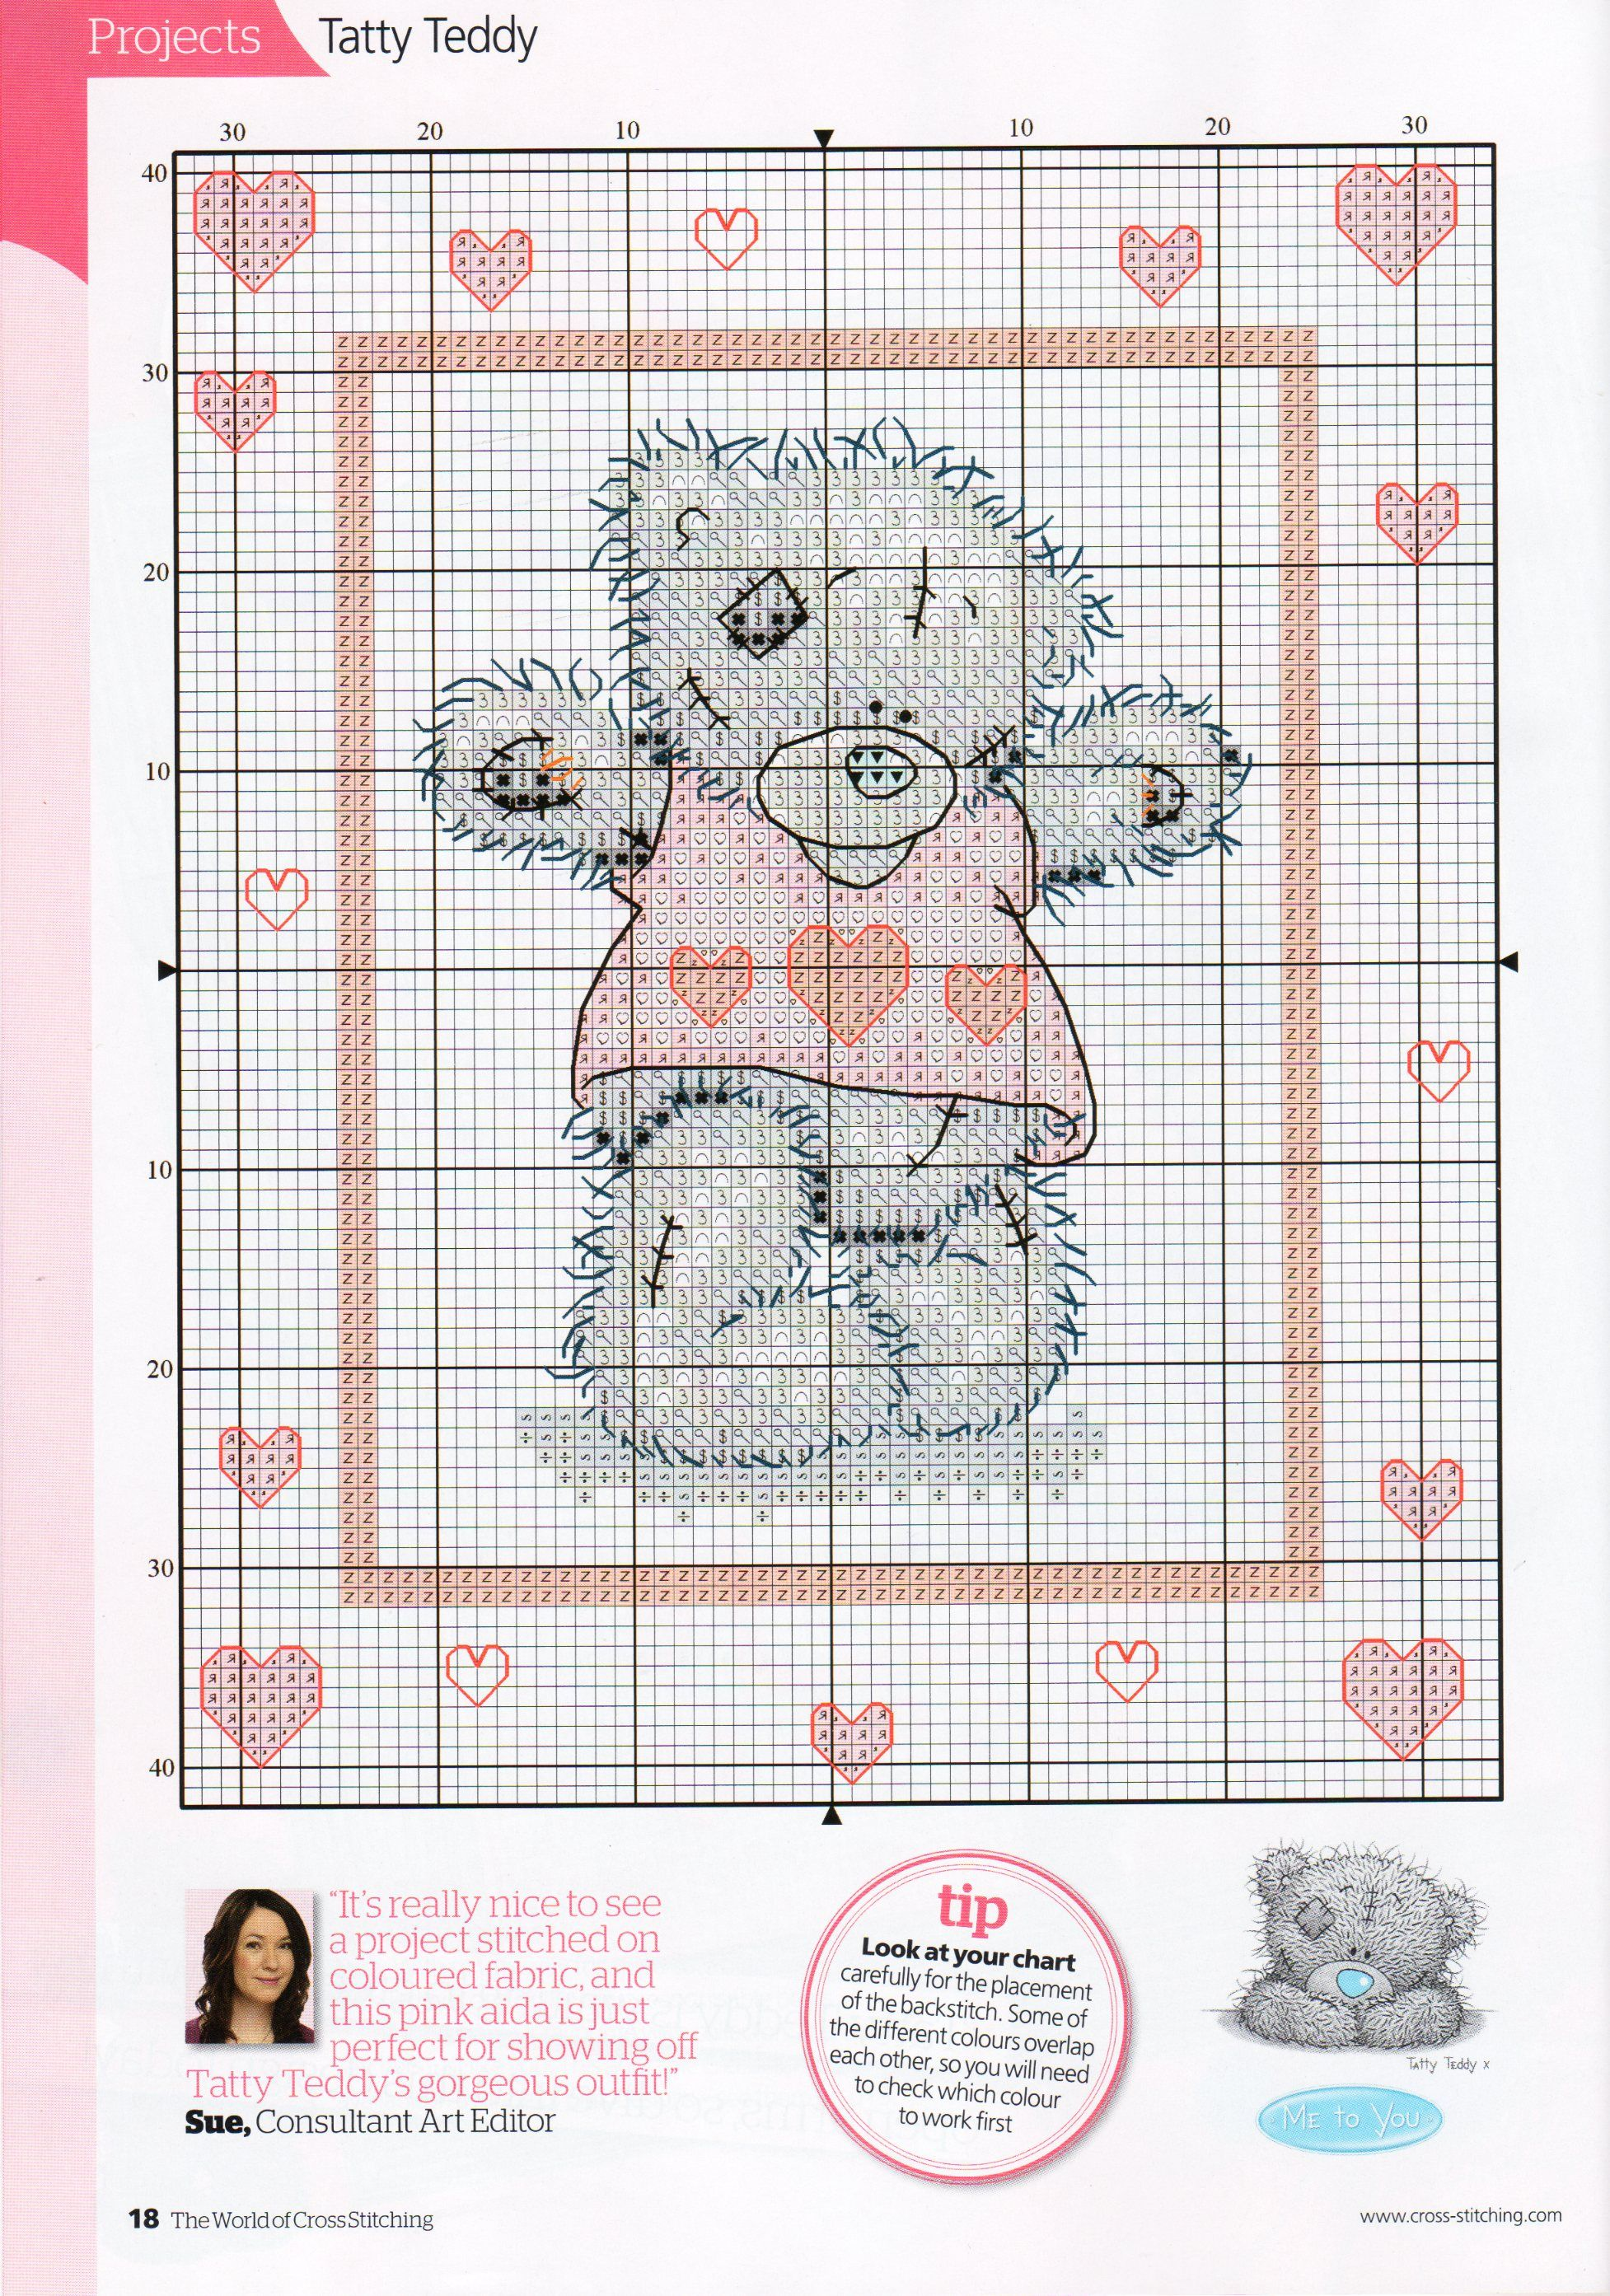 A heart full of love tatty teddy from the world of cross stitching